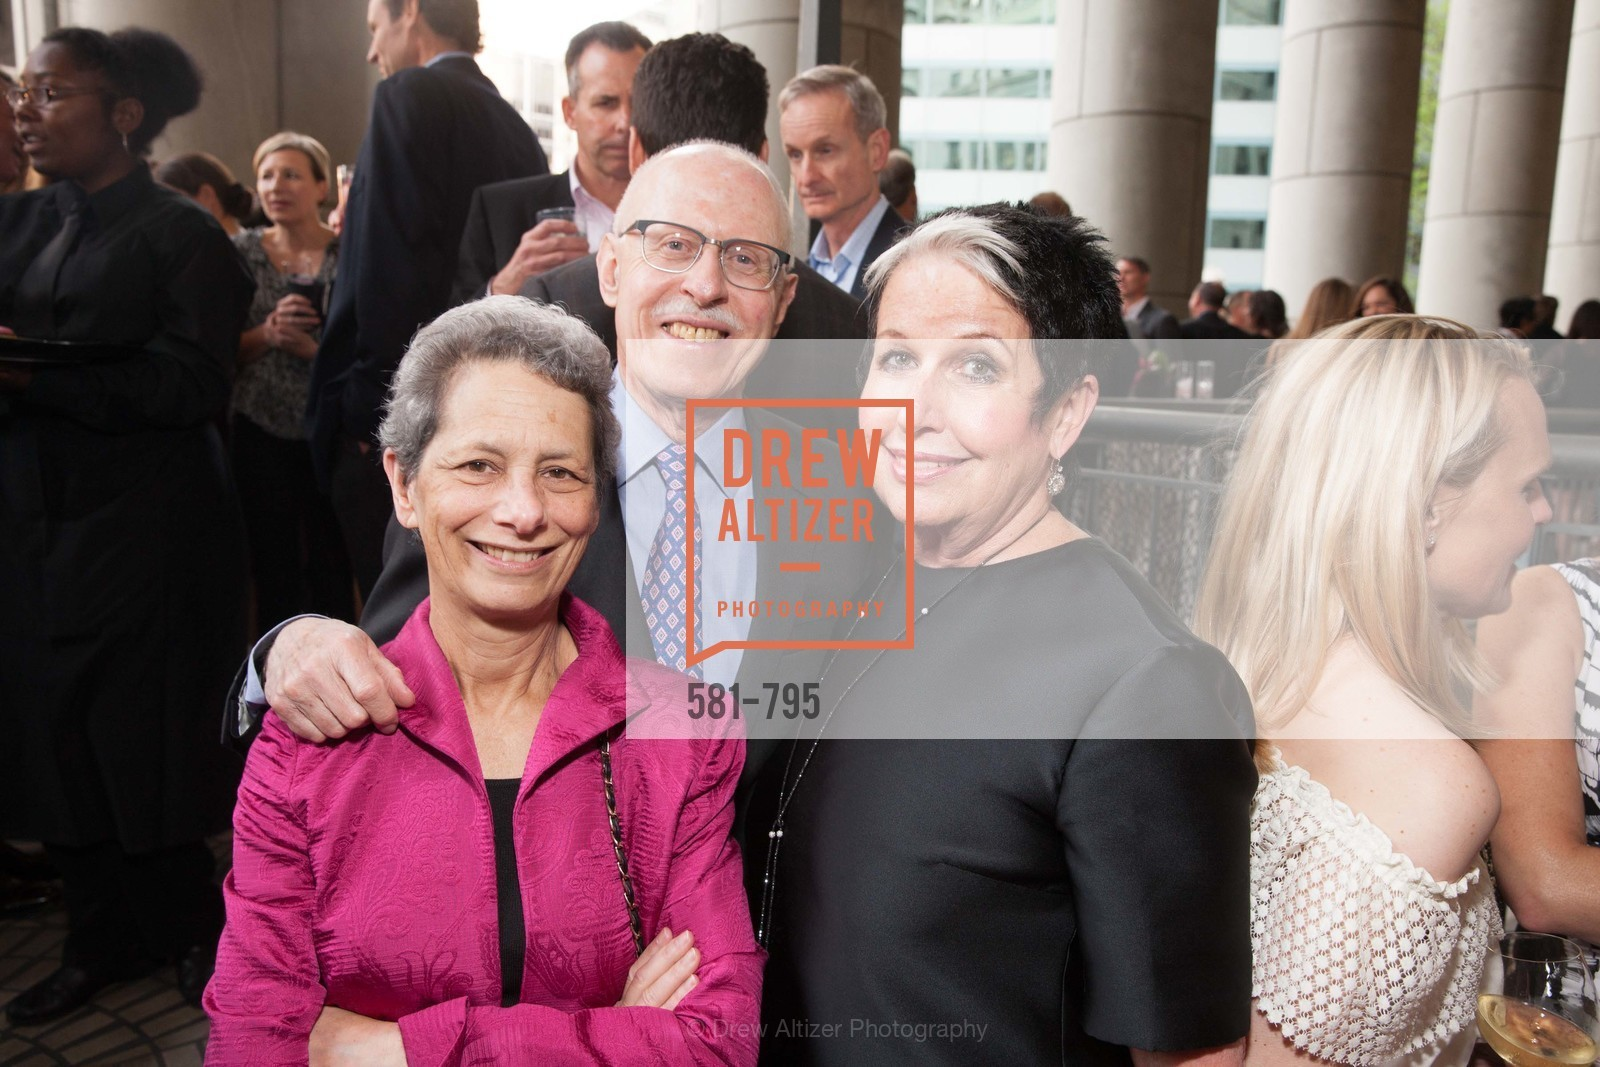 Lisa Erdberg, Dennis Gibbons, Karen Kubin, COMPASS FAMILY SERVICES Annual Spring Benefit:  Every Family Needs A Home, US, April 22nd, 2015,Drew Altizer, Drew Altizer Photography, full-service agency, private events, San Francisco photographer, photographer california